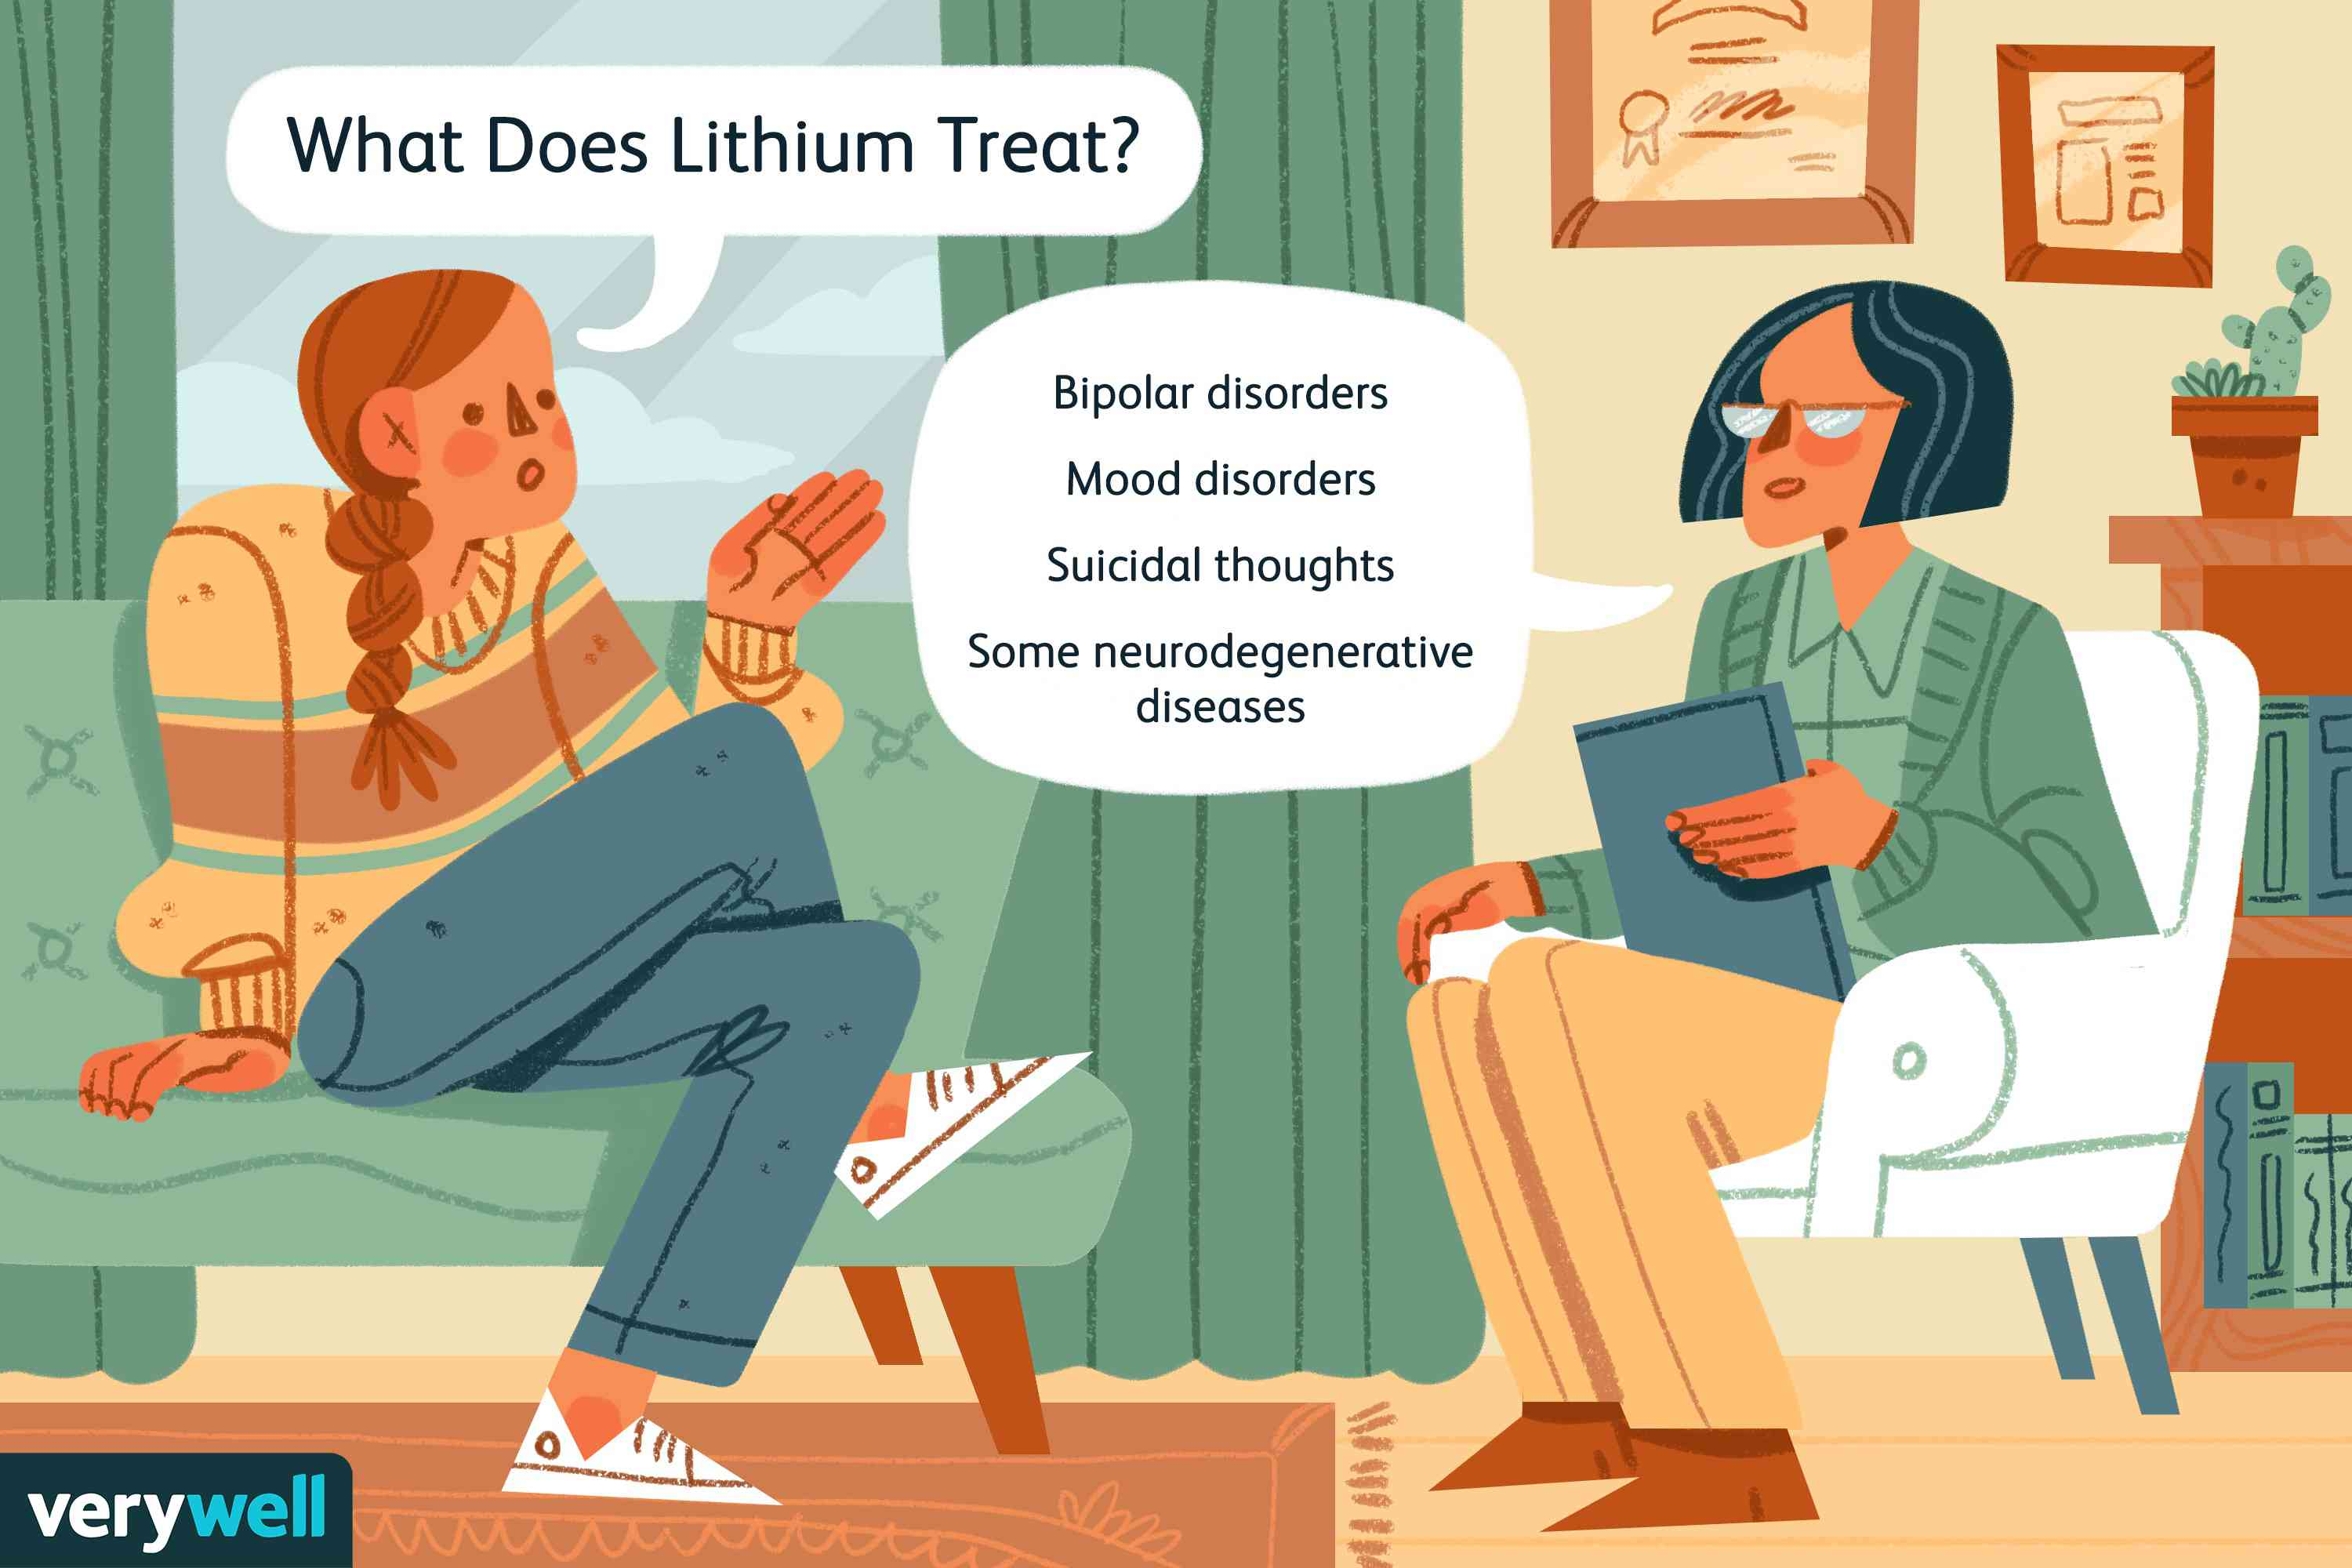 What Does Lithium Treat?